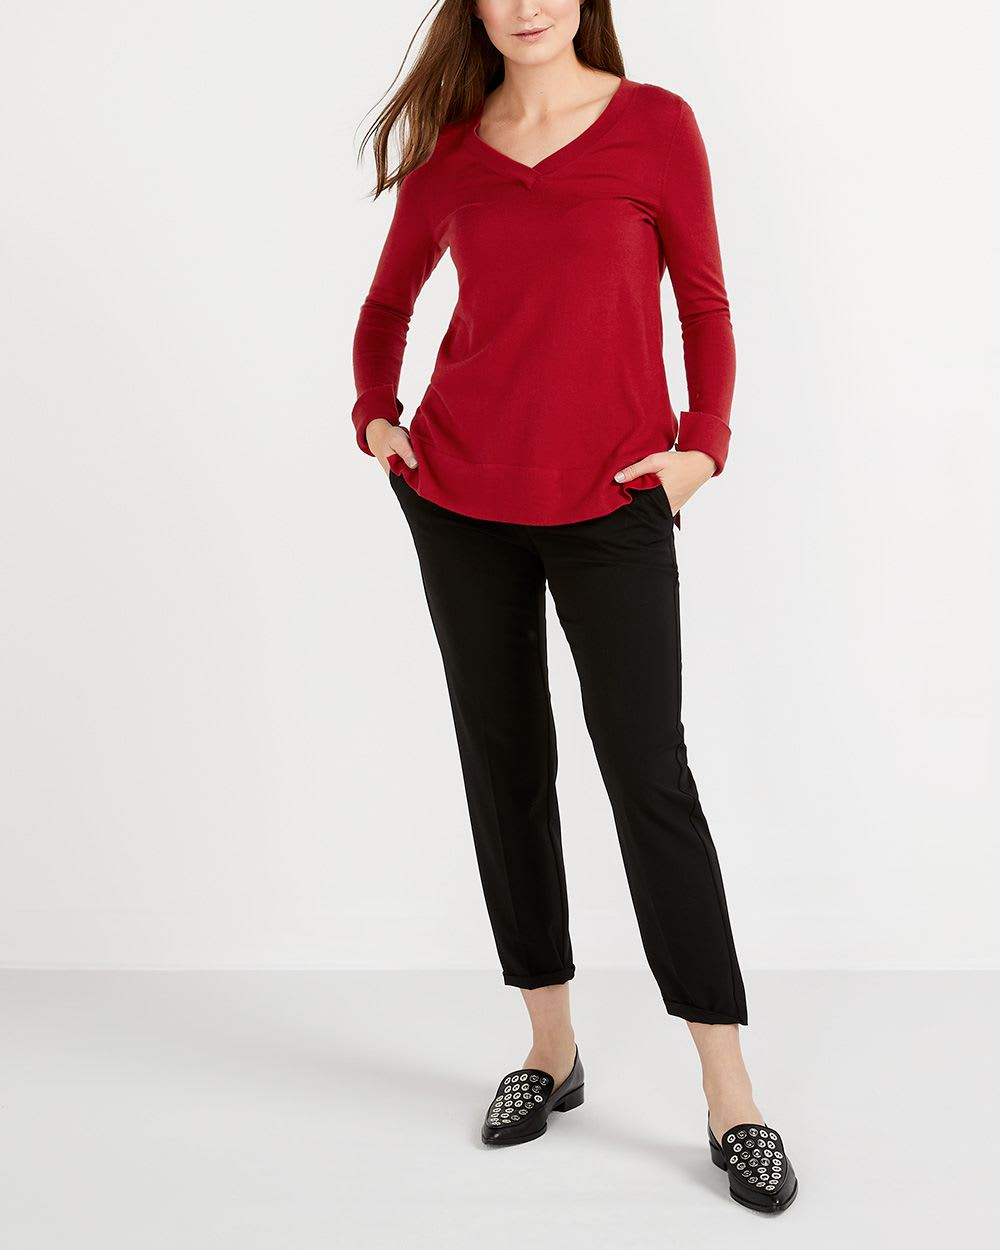 R Essentials Solid V-Neck Sweater